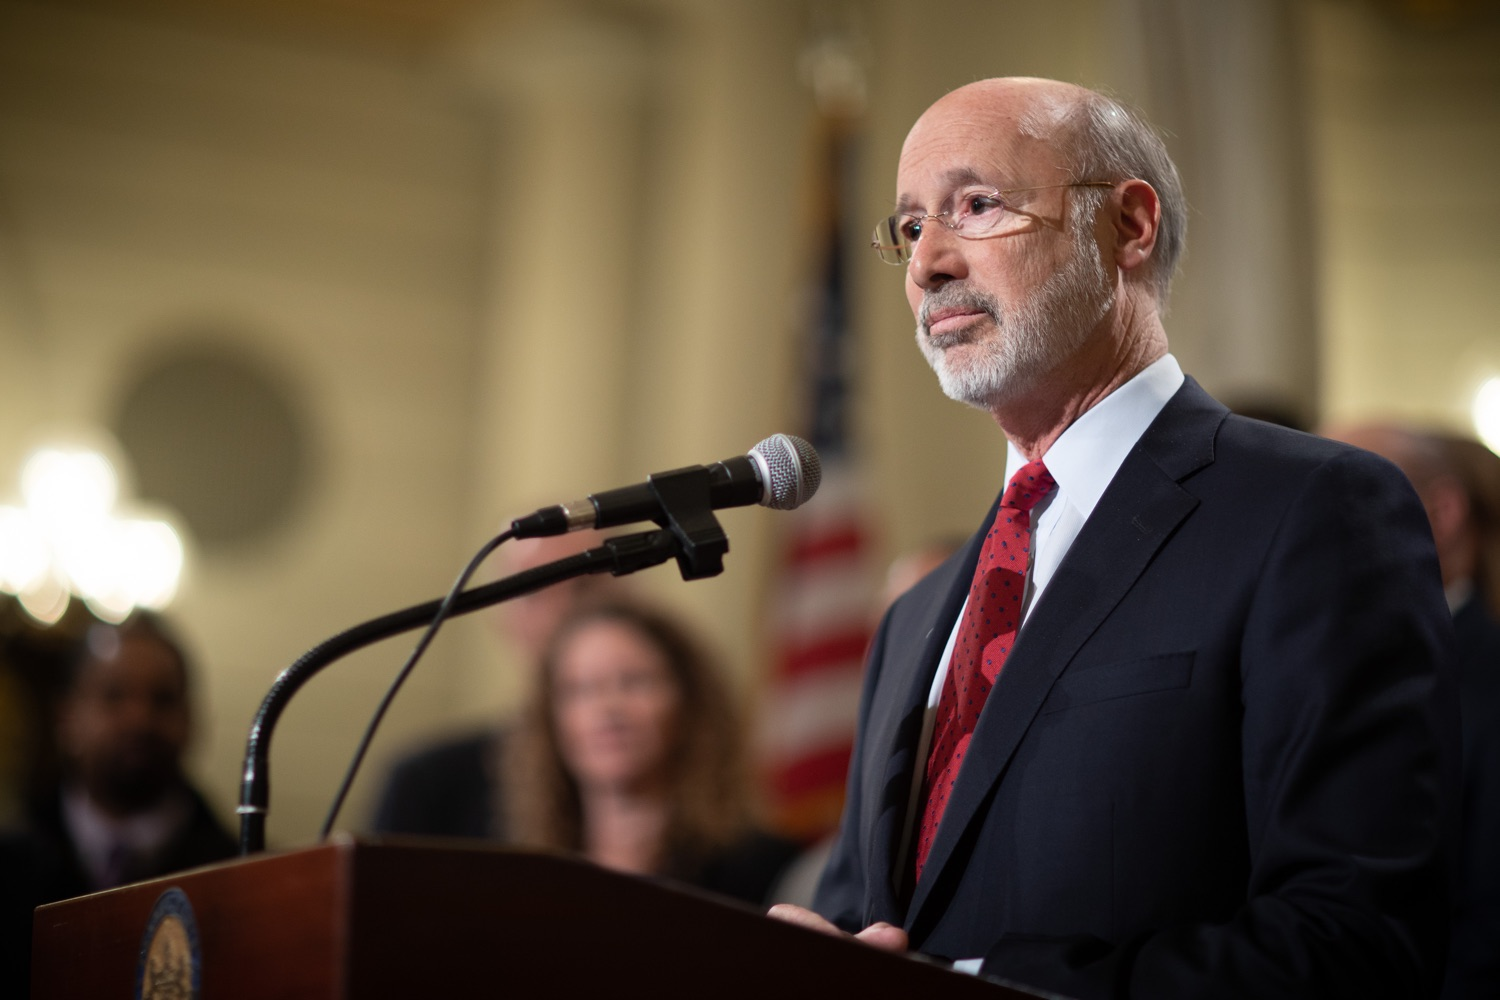 """<a href=""""http://filesource.abacast.com/commonwealthofpa/photo/17601_gov_right_on_crime_dz_020.jpg"""" target=""""_blank"""">⇣Download Photo<br></a>Governor Tom Wolf speaking at the event. Governor Tom Wolf was joined by Deputy Secretary of Corrections Christian Stephens and national criminal justice reform advocates today in the Capitol Rotunda to push for commonsense probation reforms that address probation sentences and probation lengths.  Harrisburg, PA  November 18, 2019"""